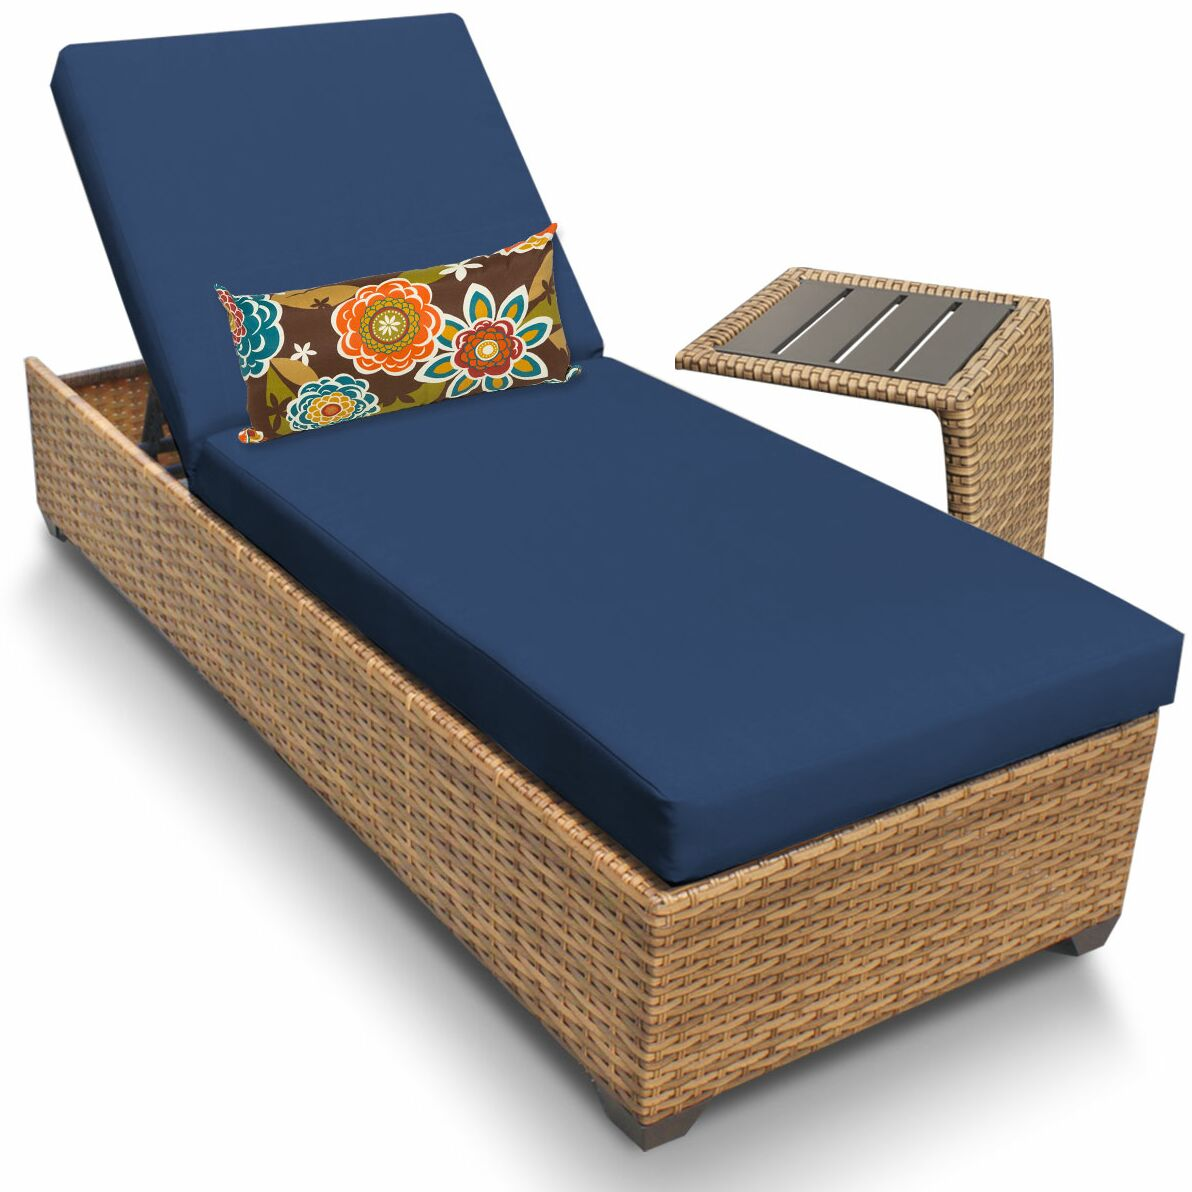 Asellus Chaise Lounge with Cushion and Table Color: Navy